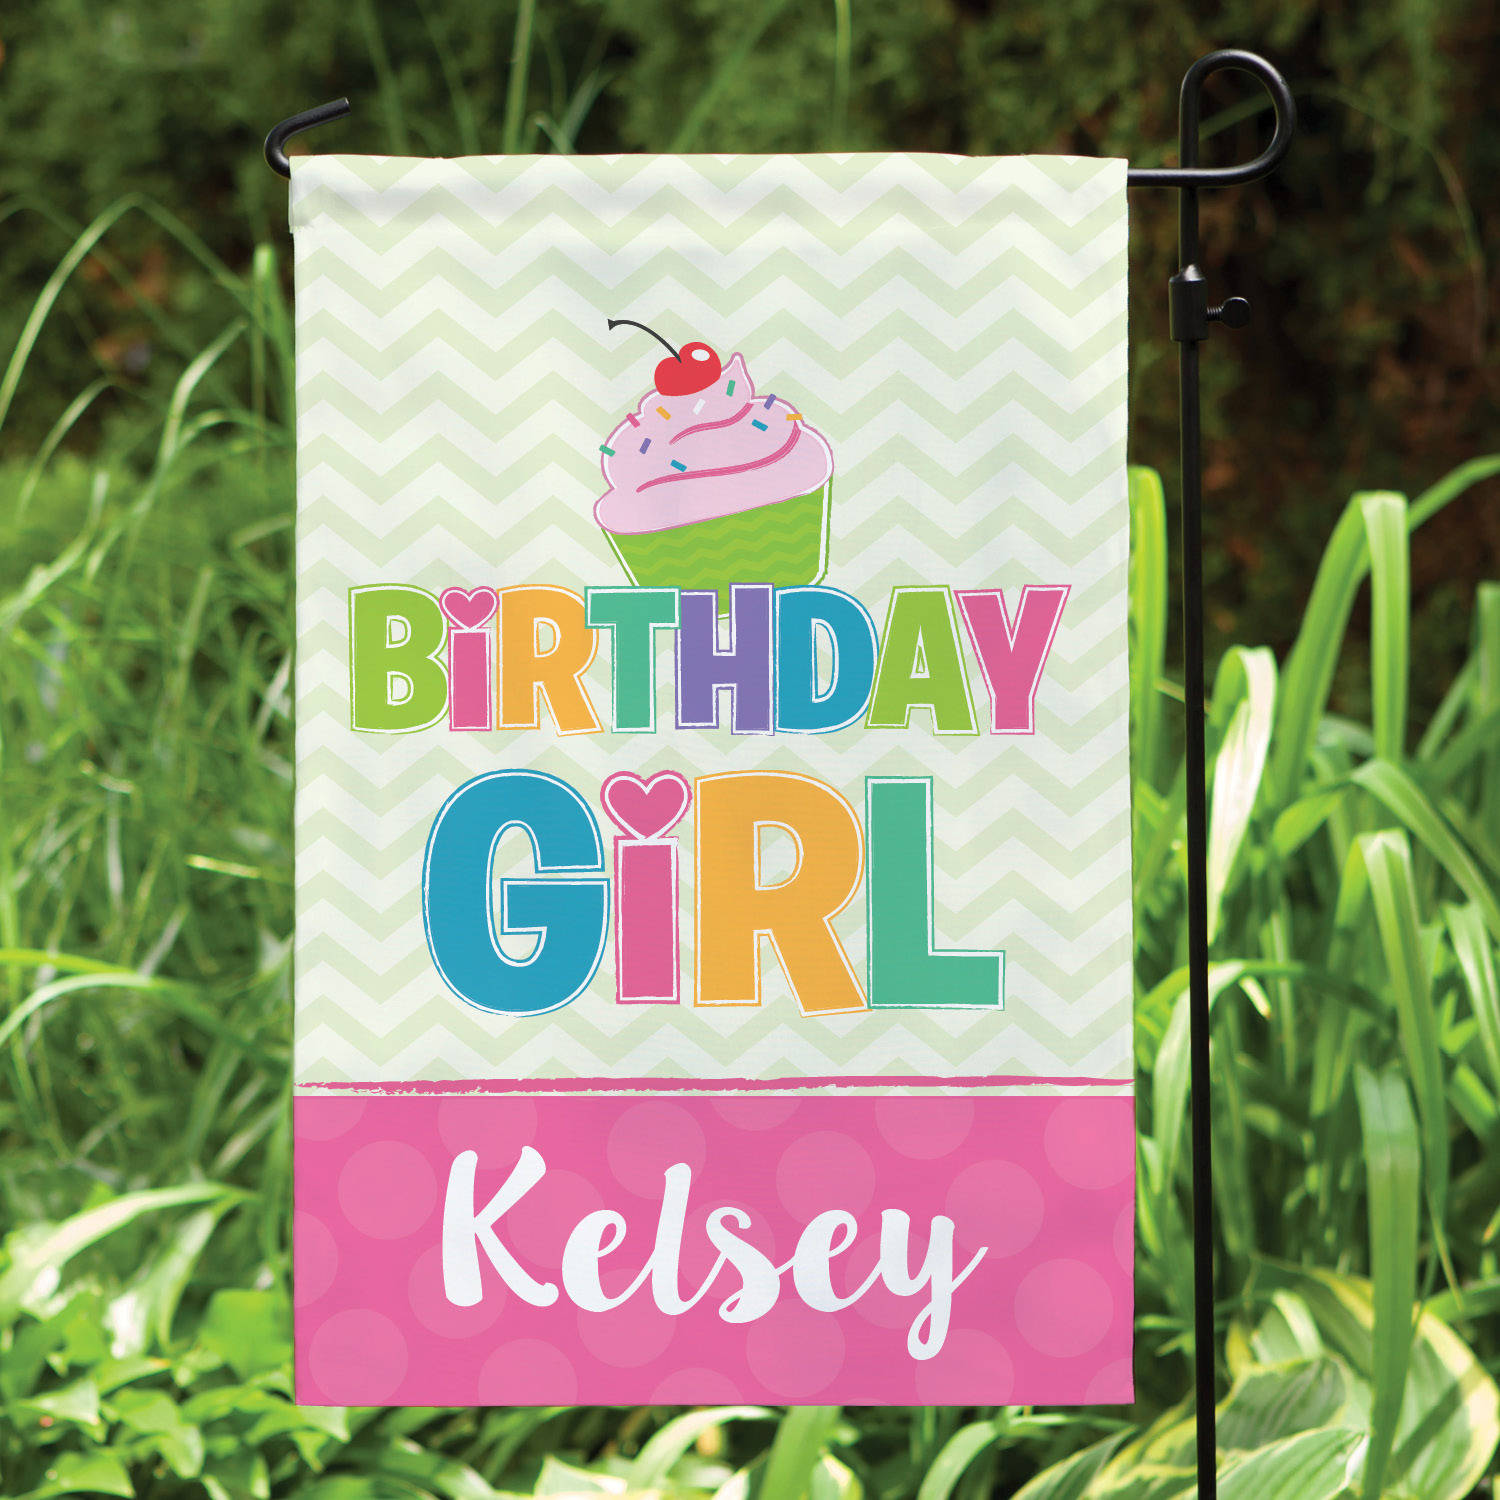 Birthday Girl Personalized Garden Flag